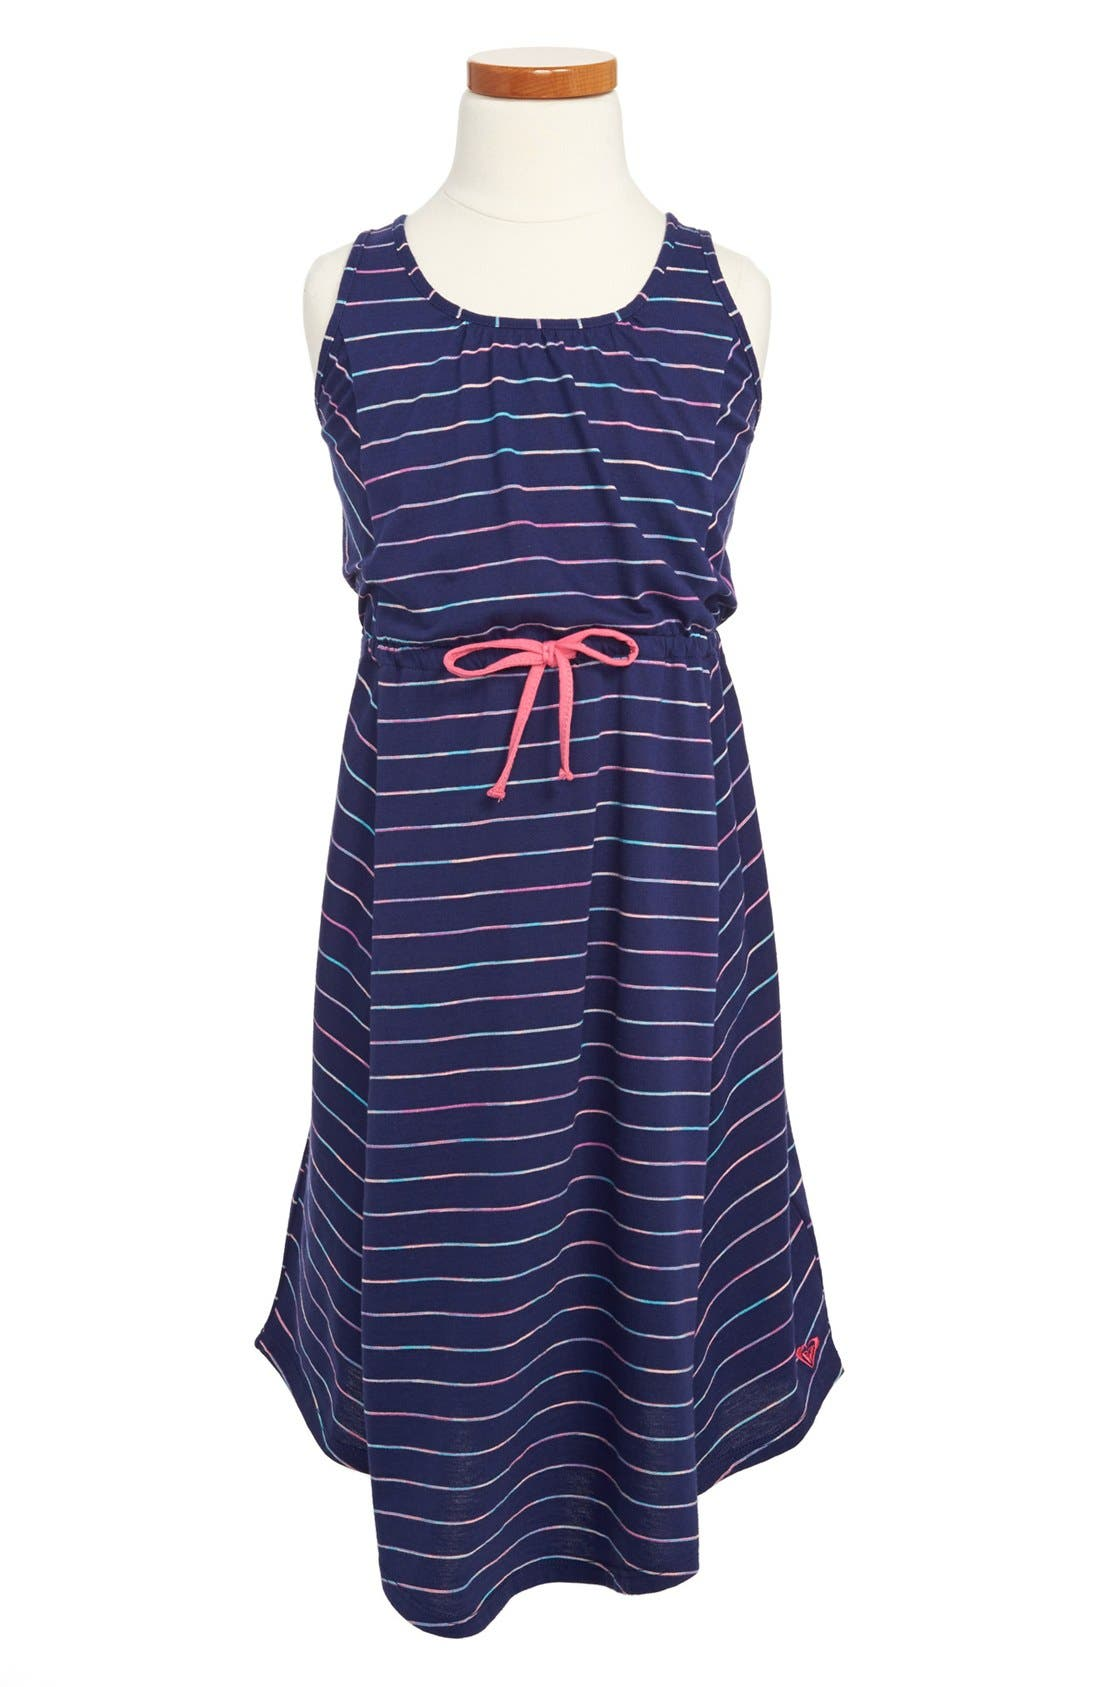 Main Image - Roxy 'Valley Spring' Dress (Big Girls)(Online Only)